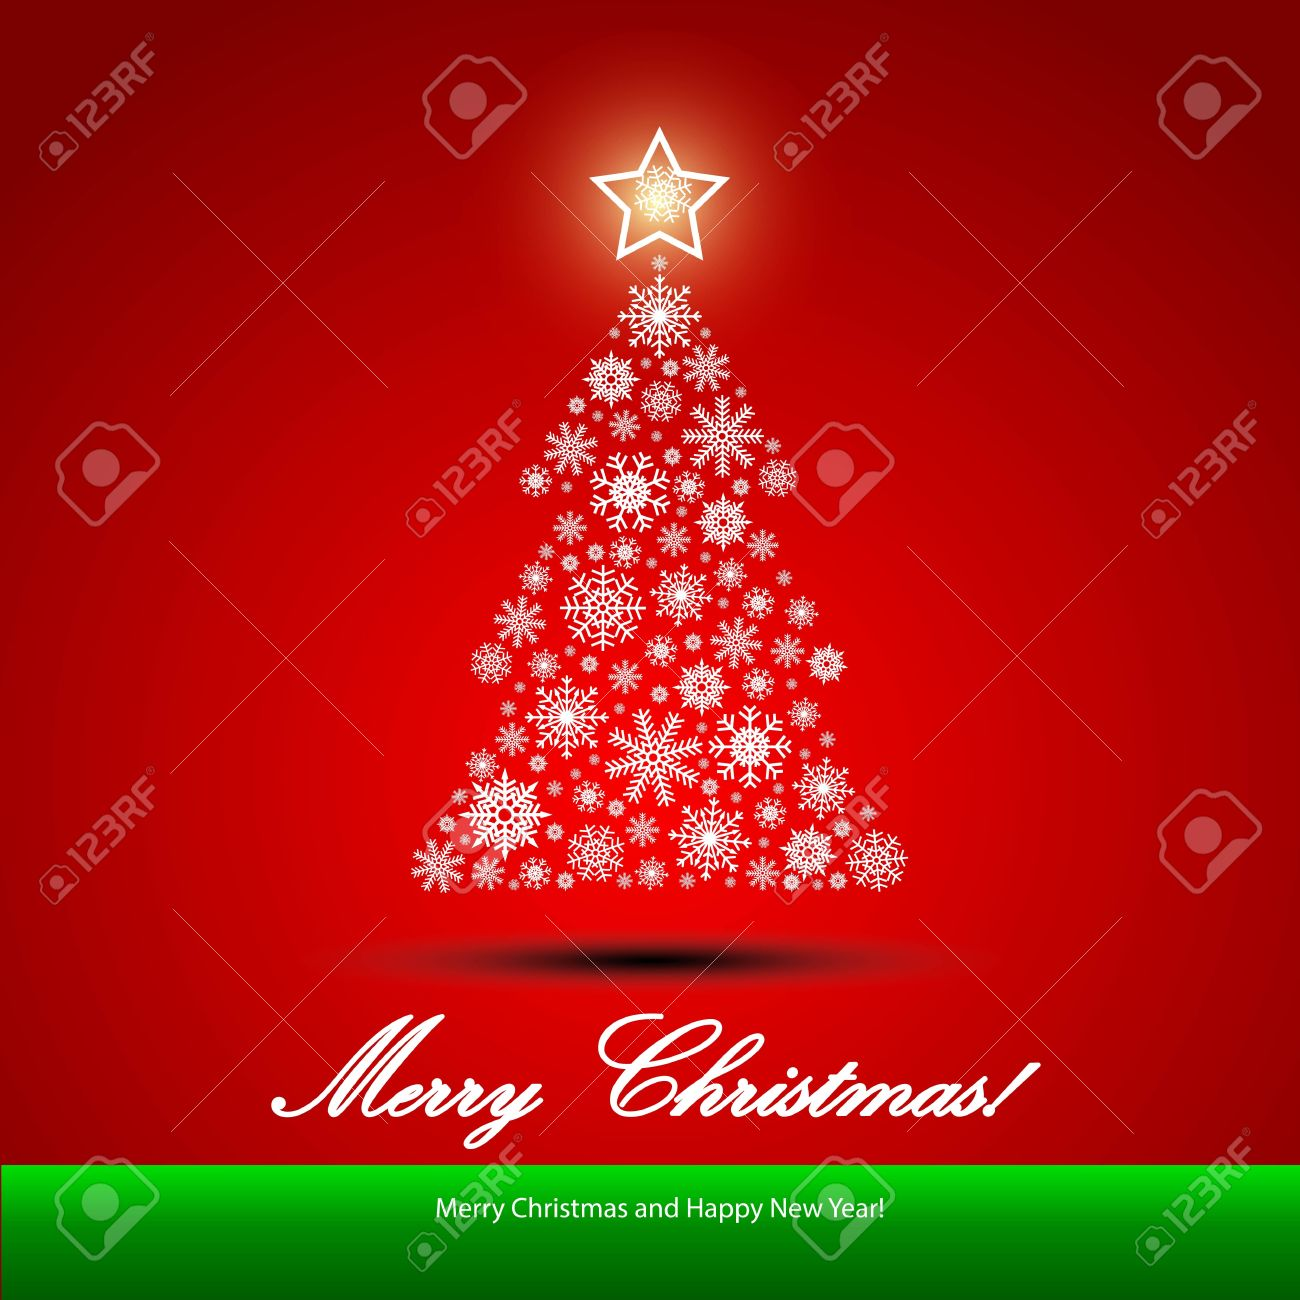 Christmas background with Christmas tree, illustration Stock Vector - 16578998